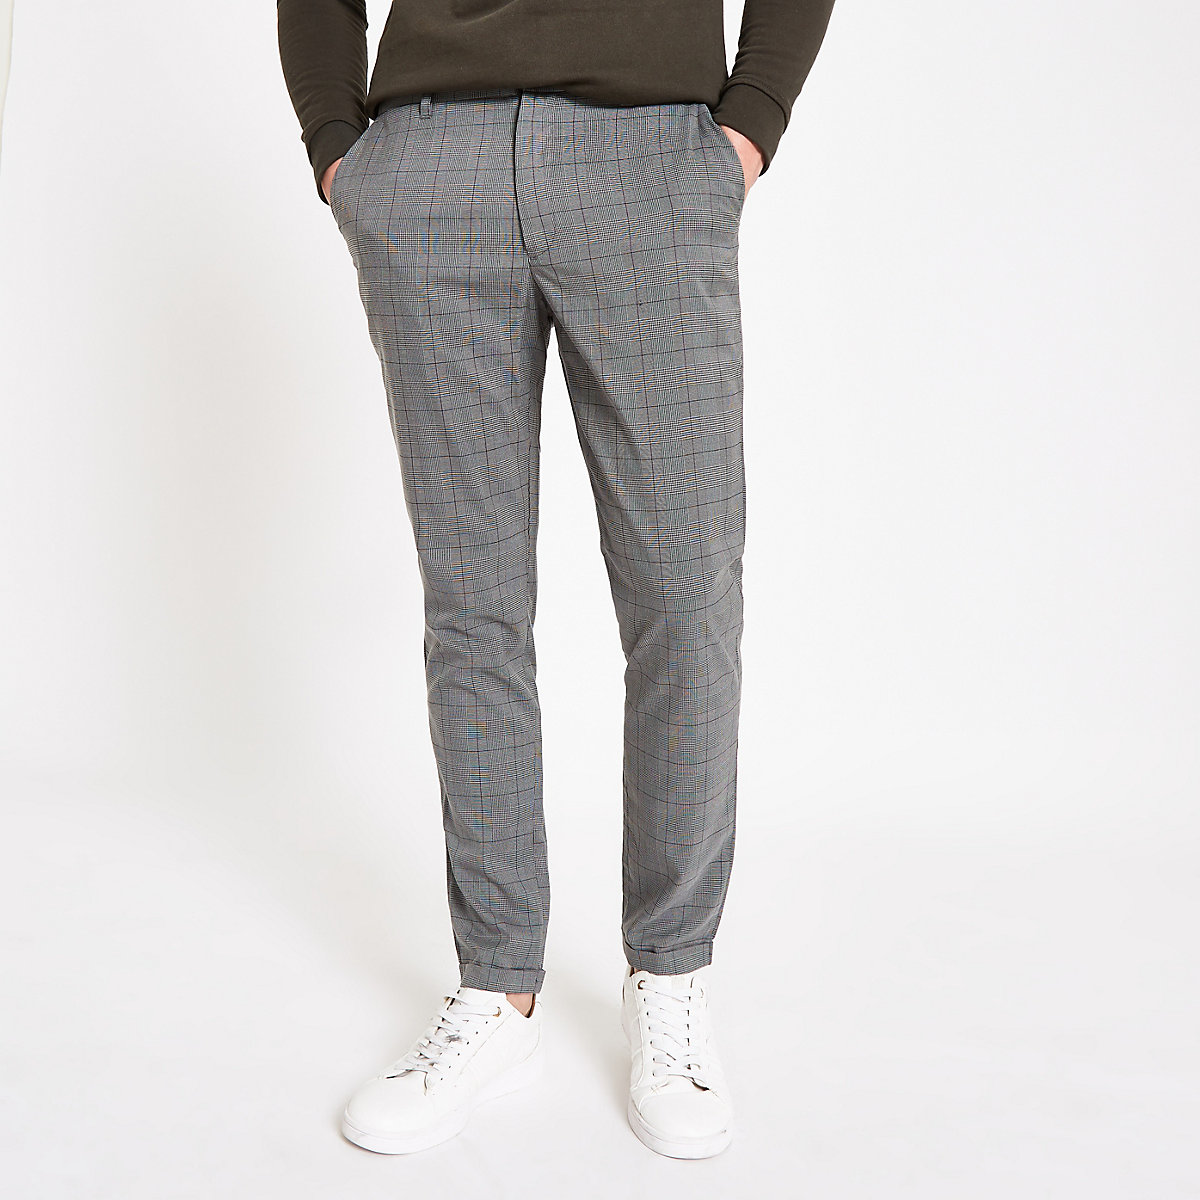 Minimum grey check slim fit pants